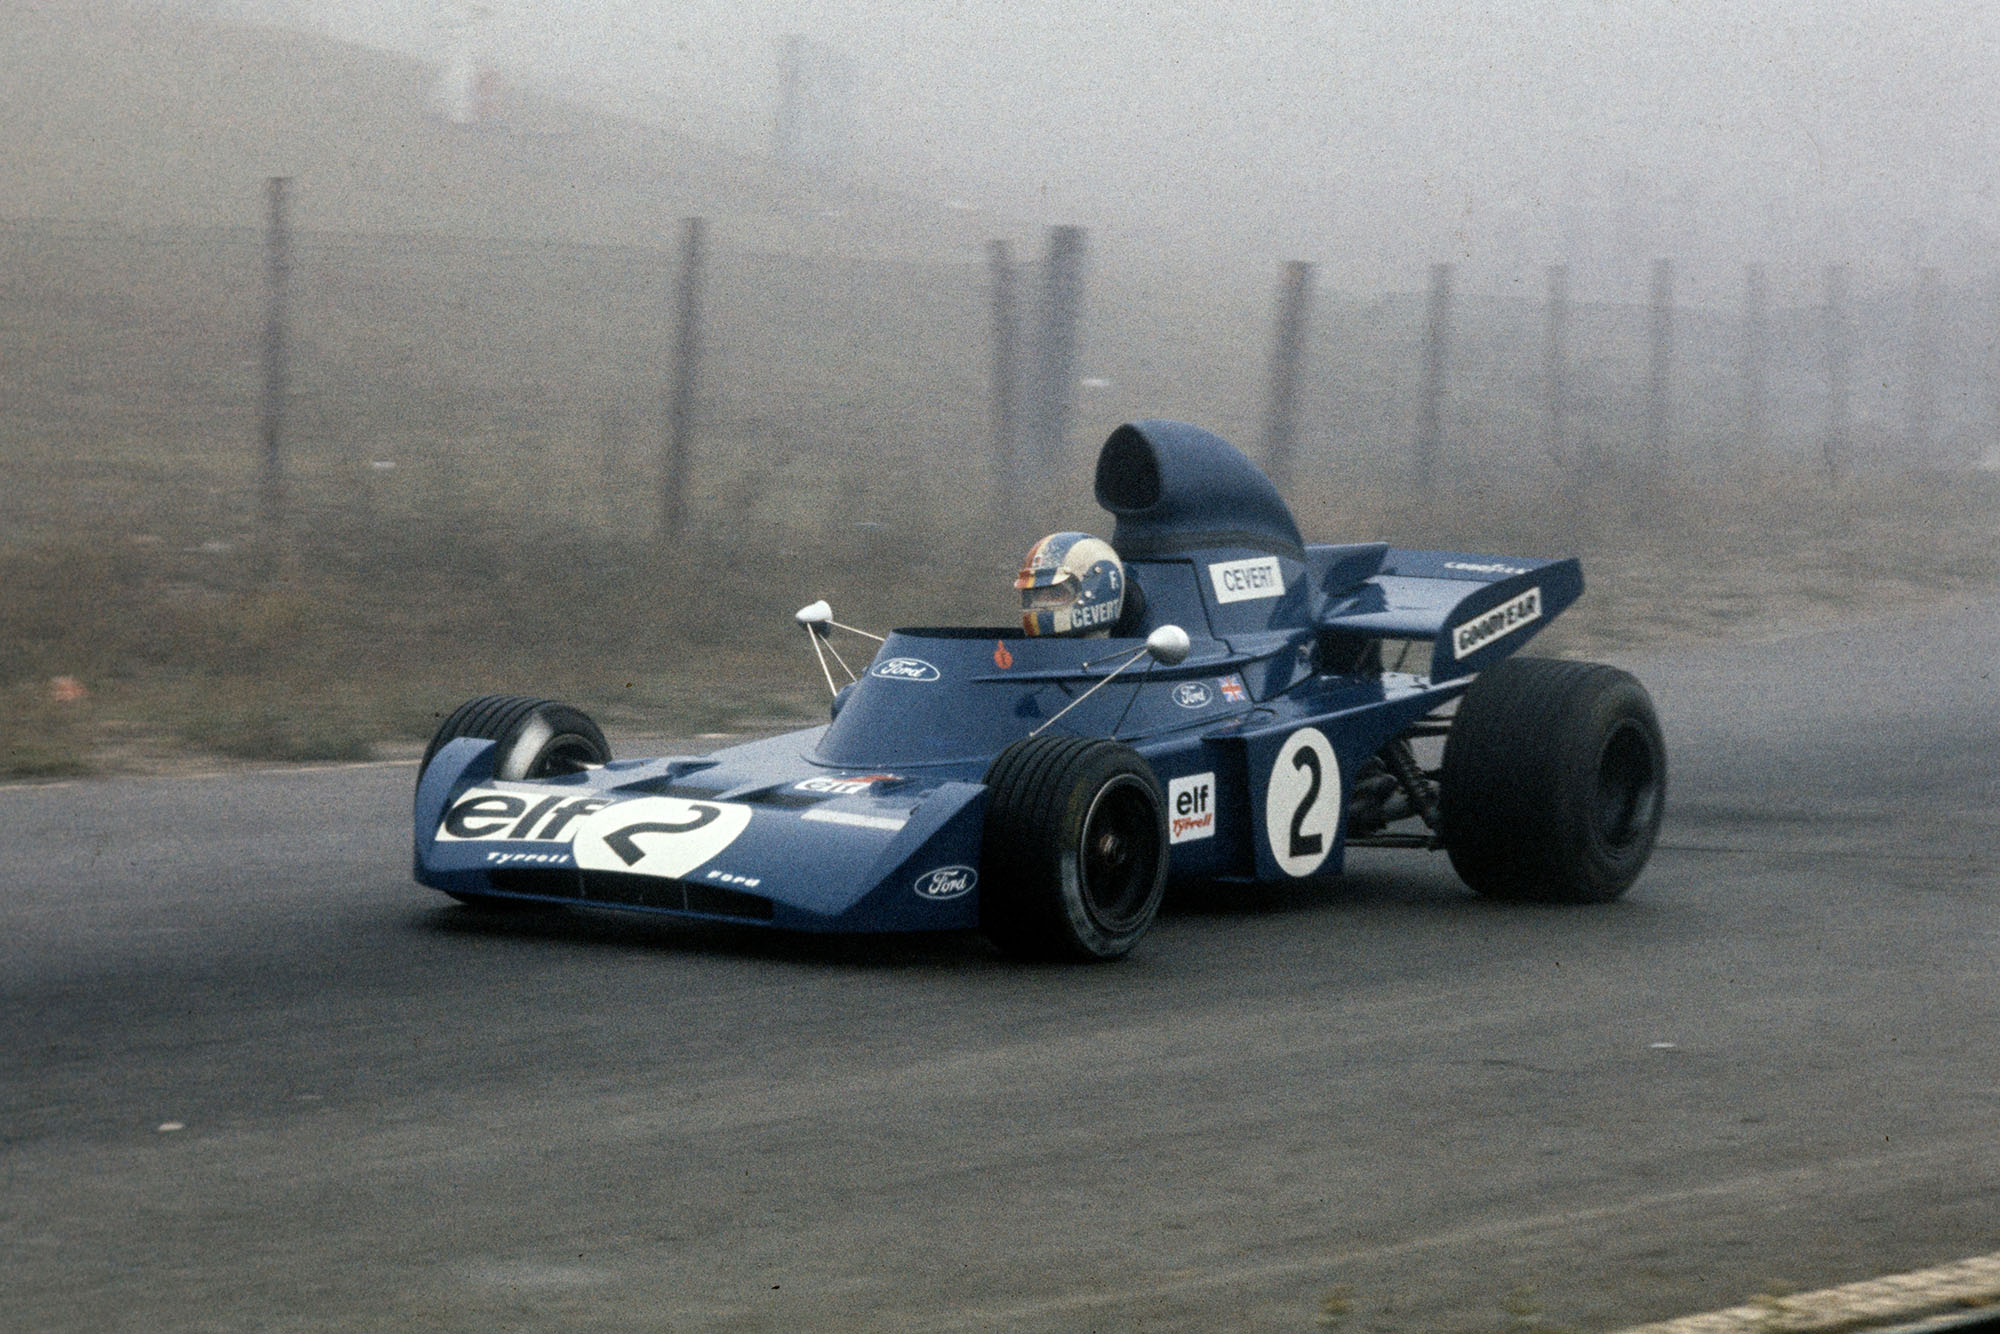 Francois Cevert driving for Tyrrell at the 1972 Canadian Grand Prix